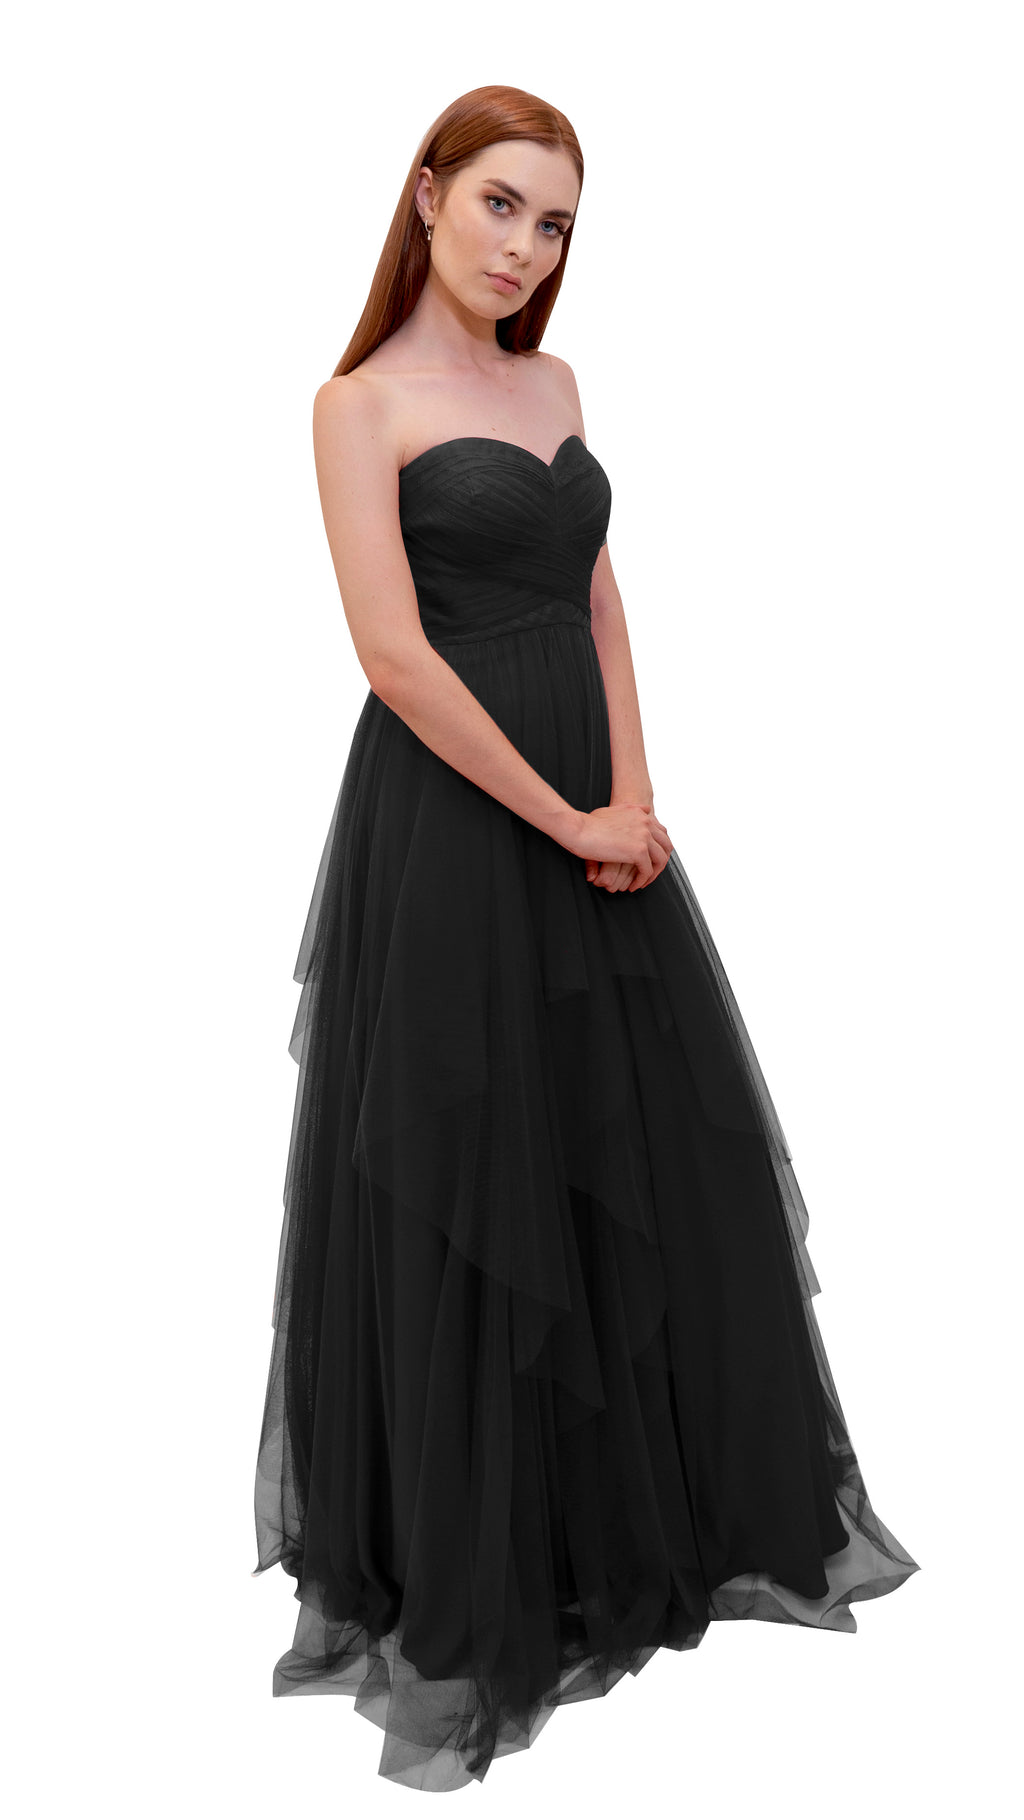 Bariano Petranzia Tulle Ball Gown Black